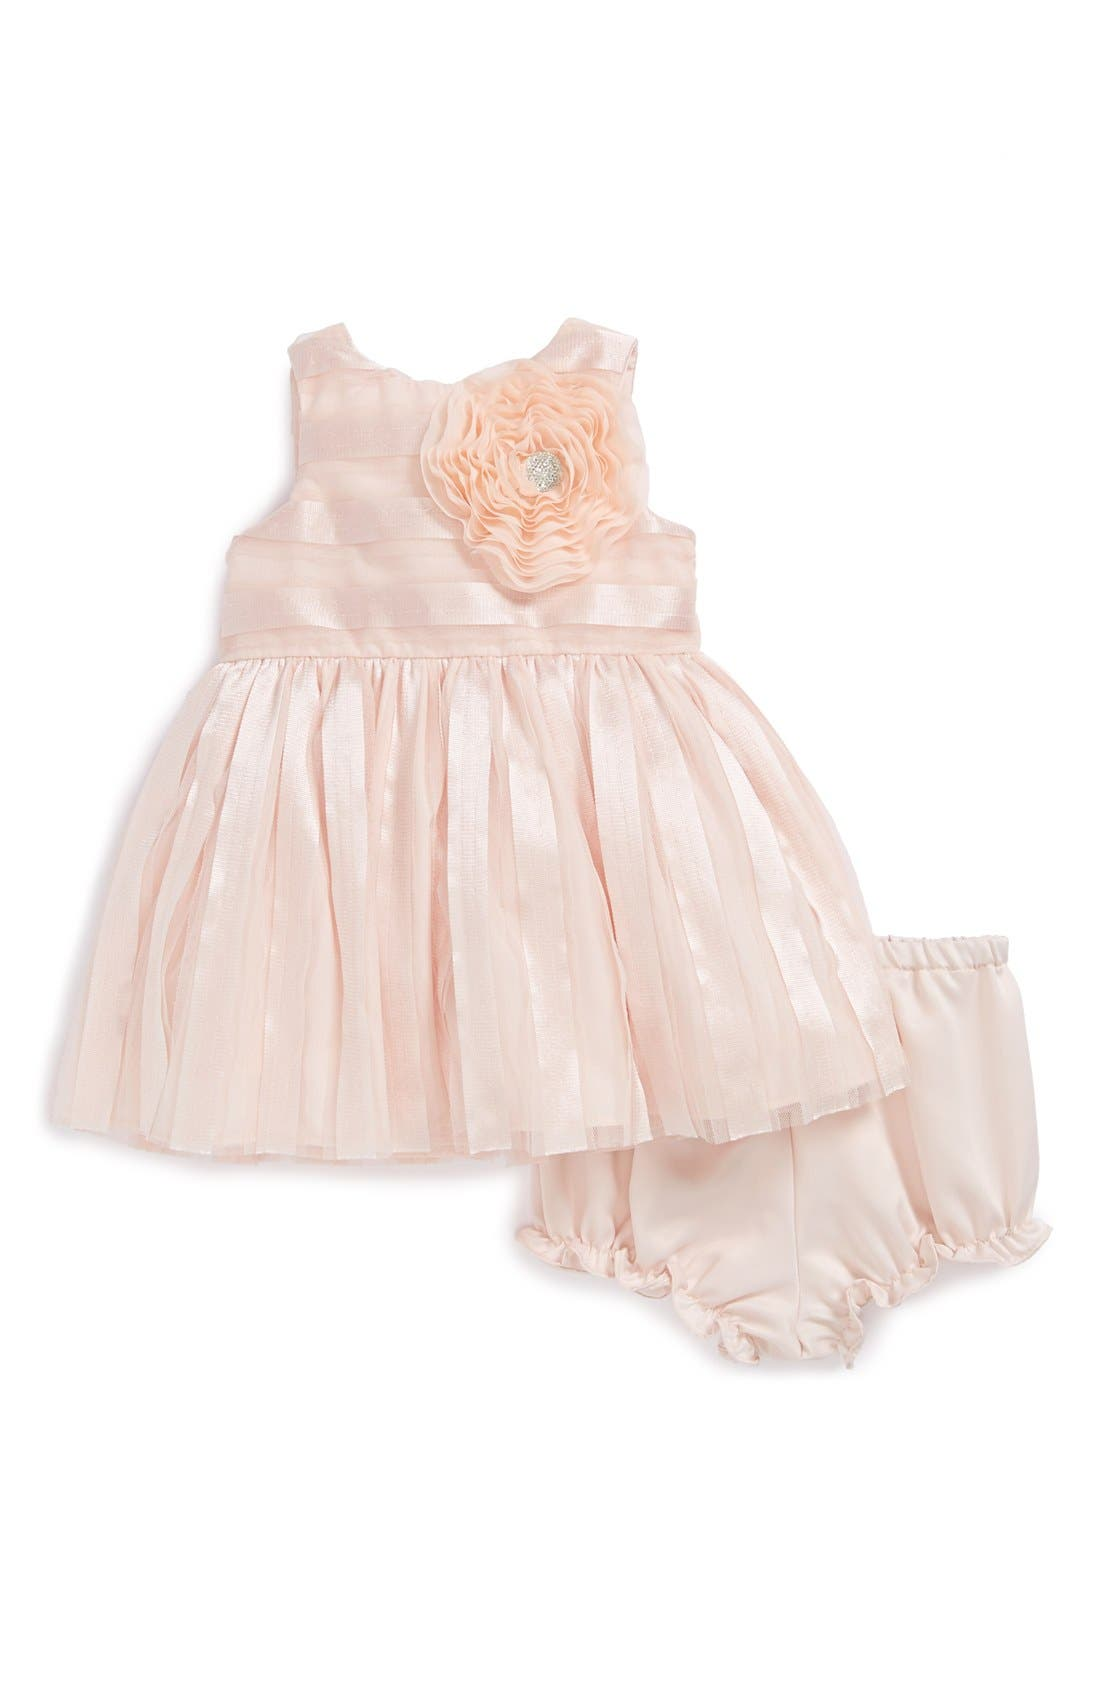 Main Image - Pippa & Julie Ribbon Stripe Dress & Bloomers (Baby Girls)